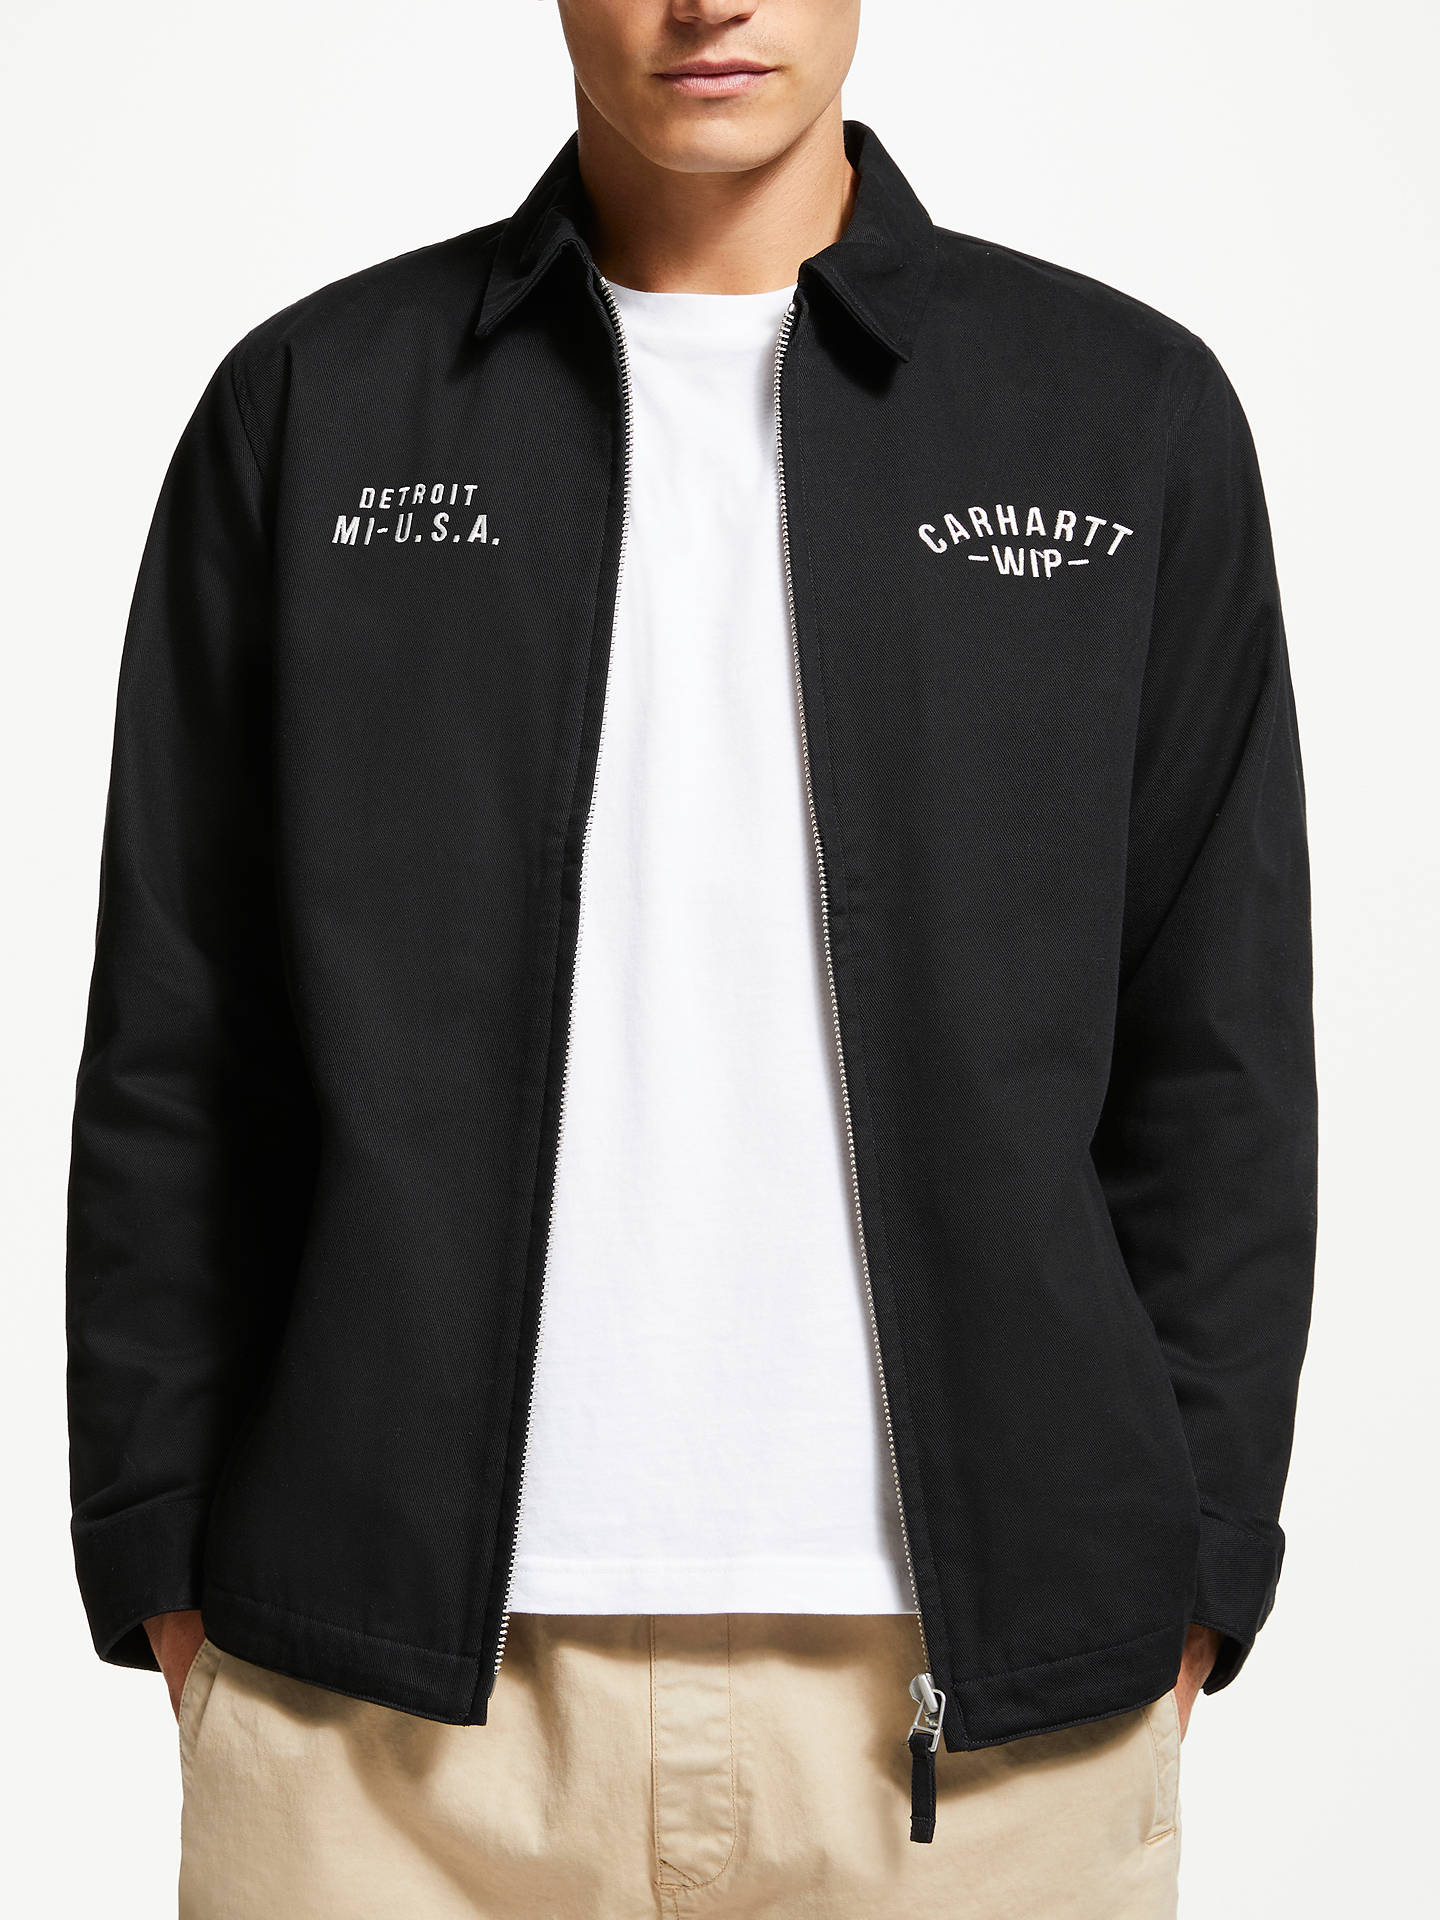 b6827a6b8f Buy Carhartt WIP Lakes Jacket, Black, XL Online at johnlewis.com ...